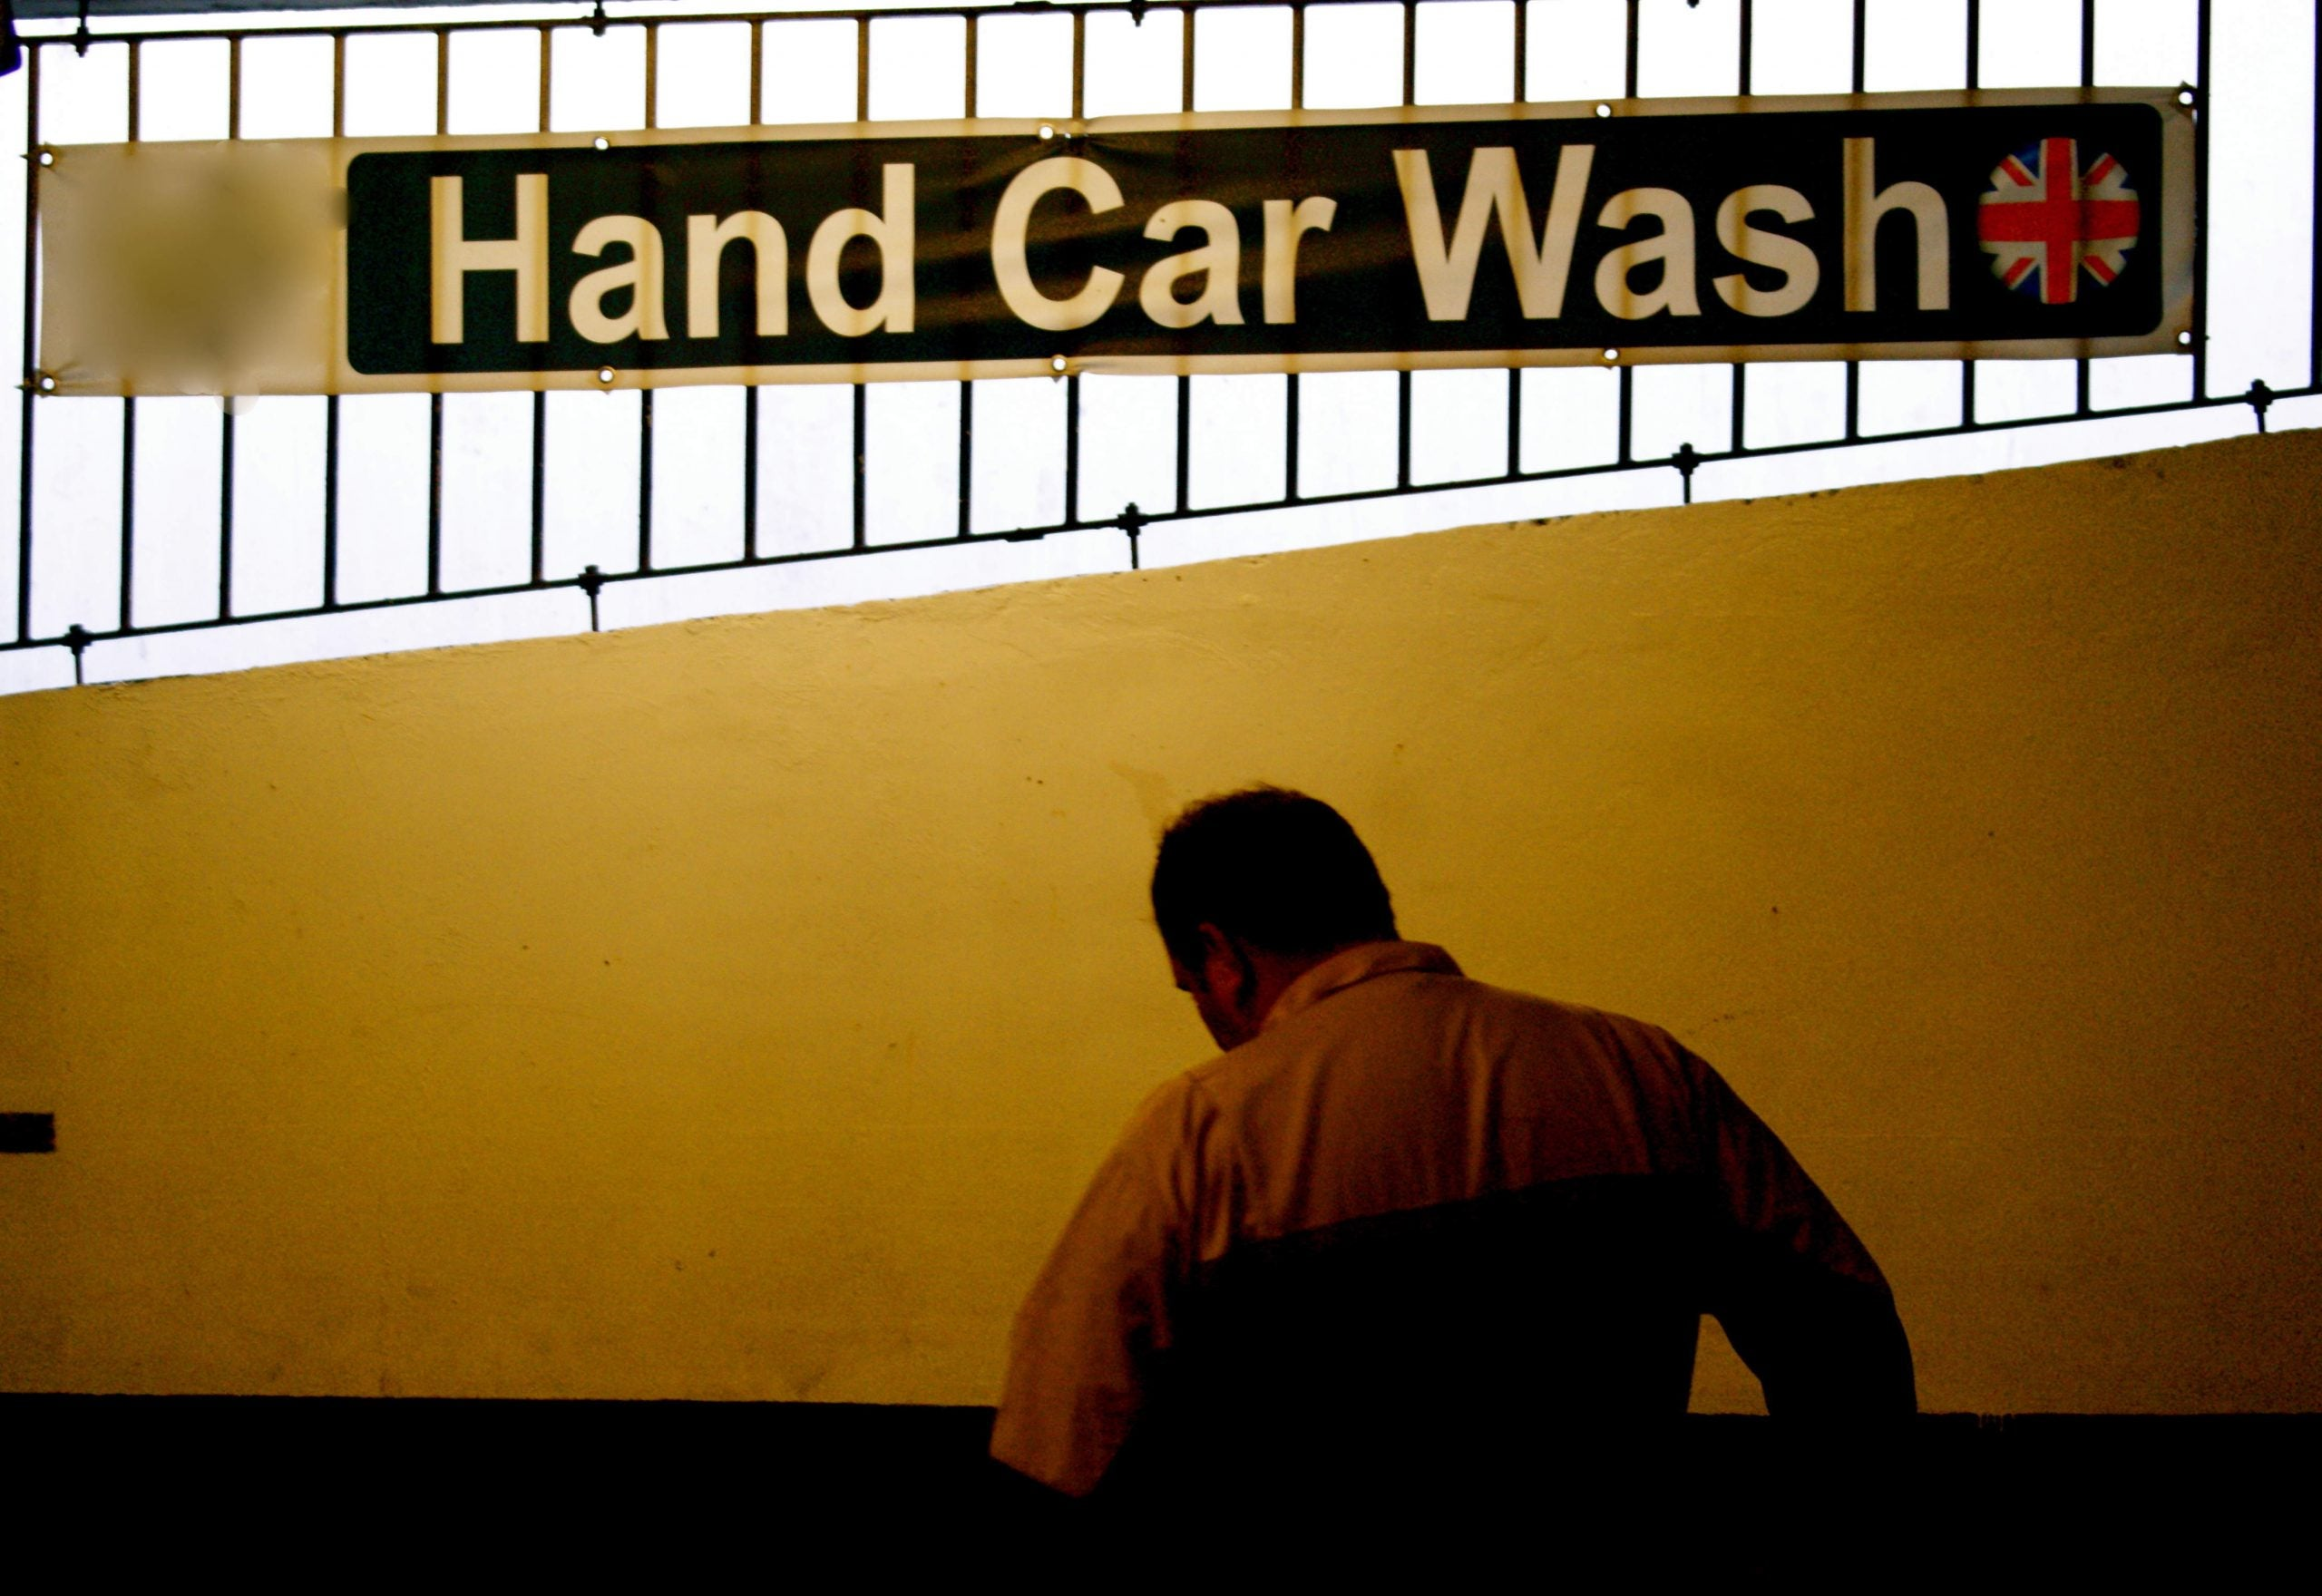 Dirty dealings: how the car wash became a hub for human trafficking